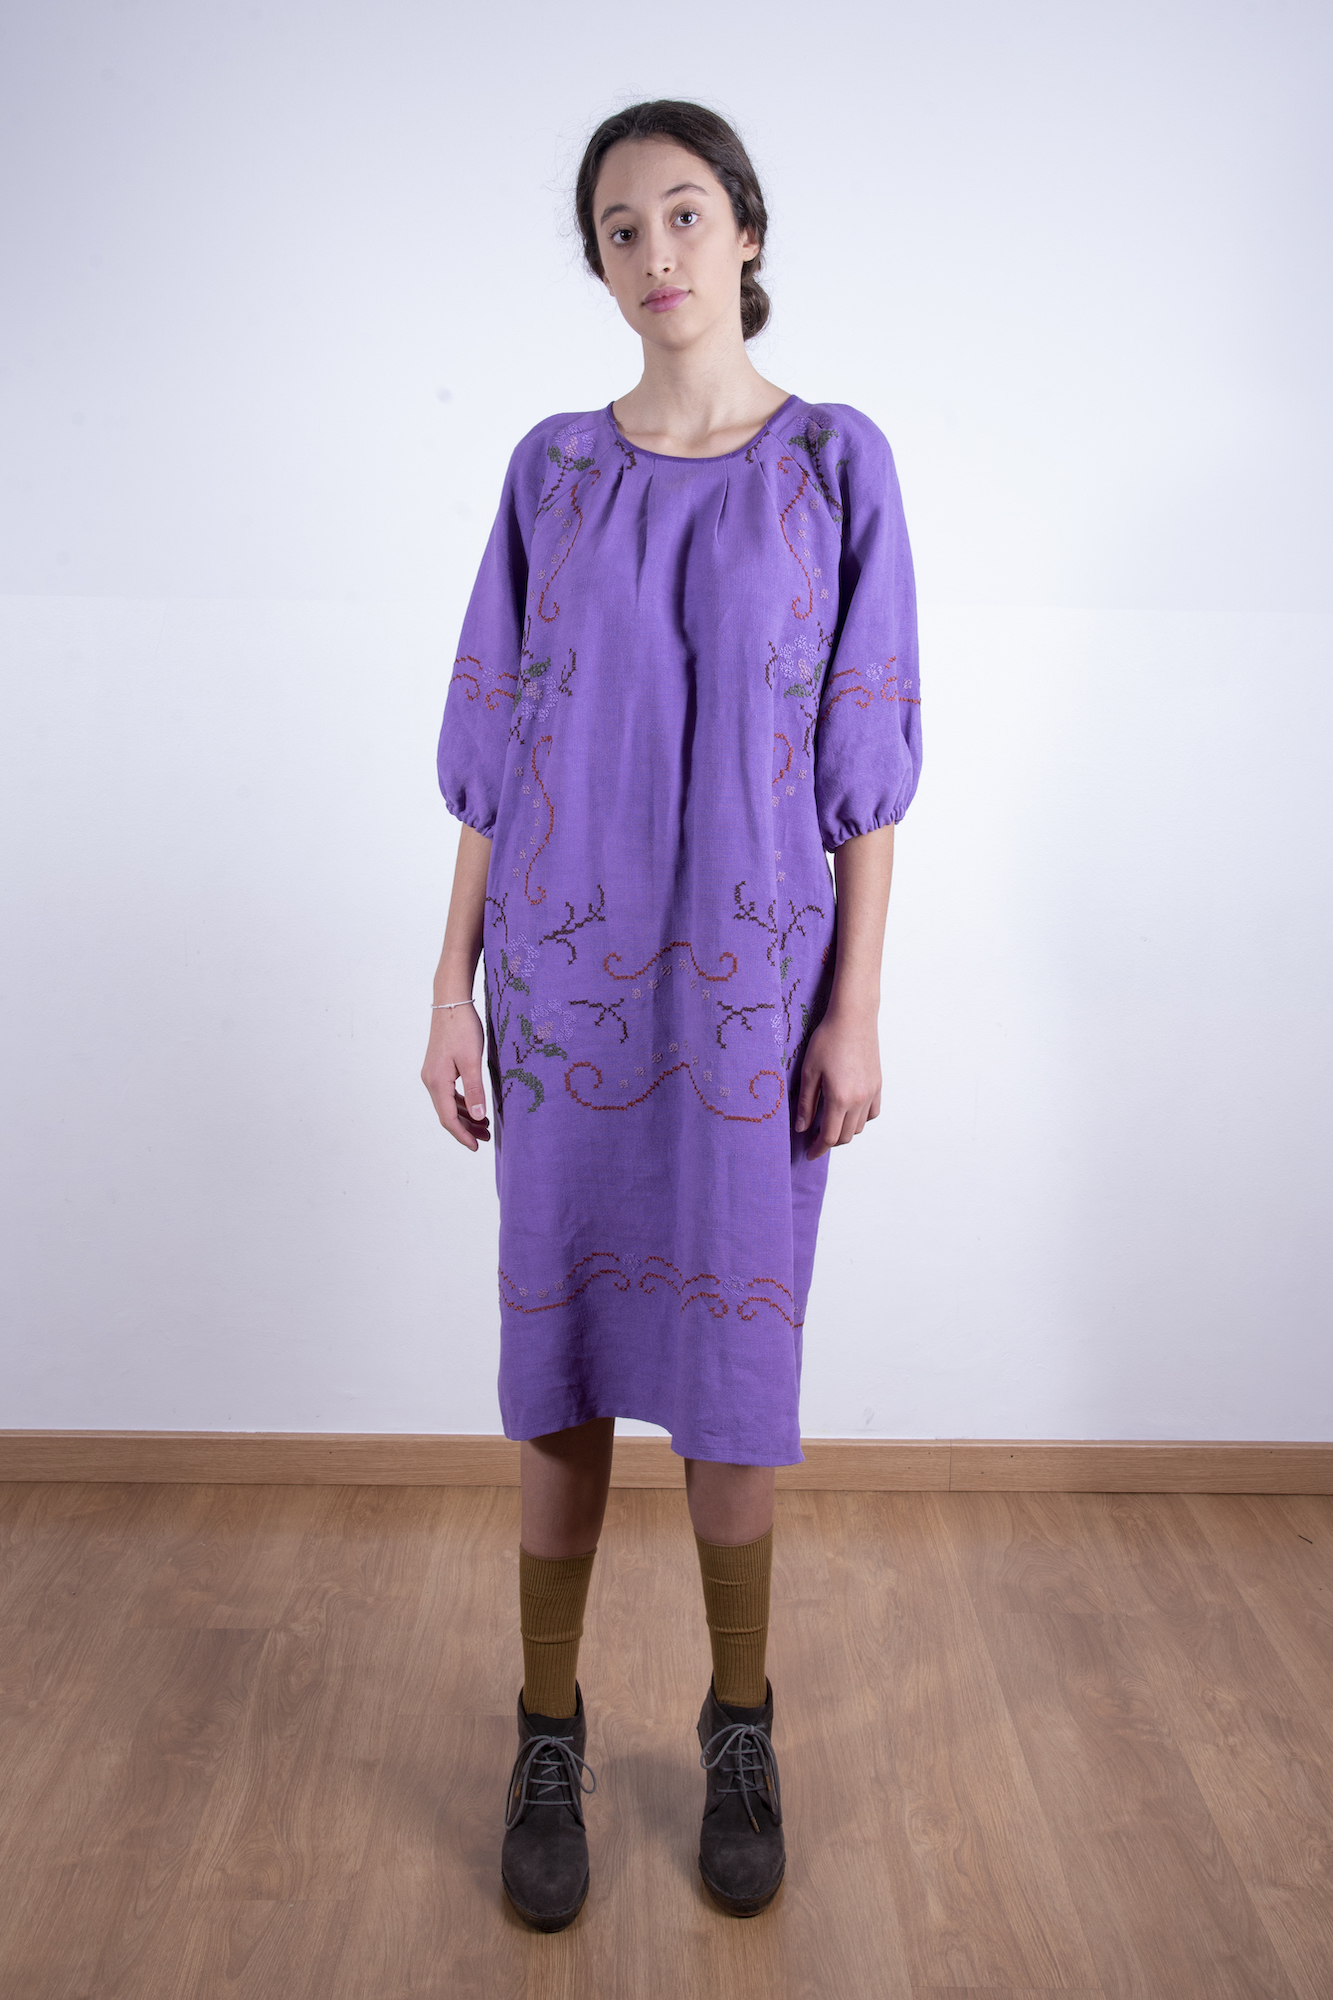 Purple oversized and embroidered dress